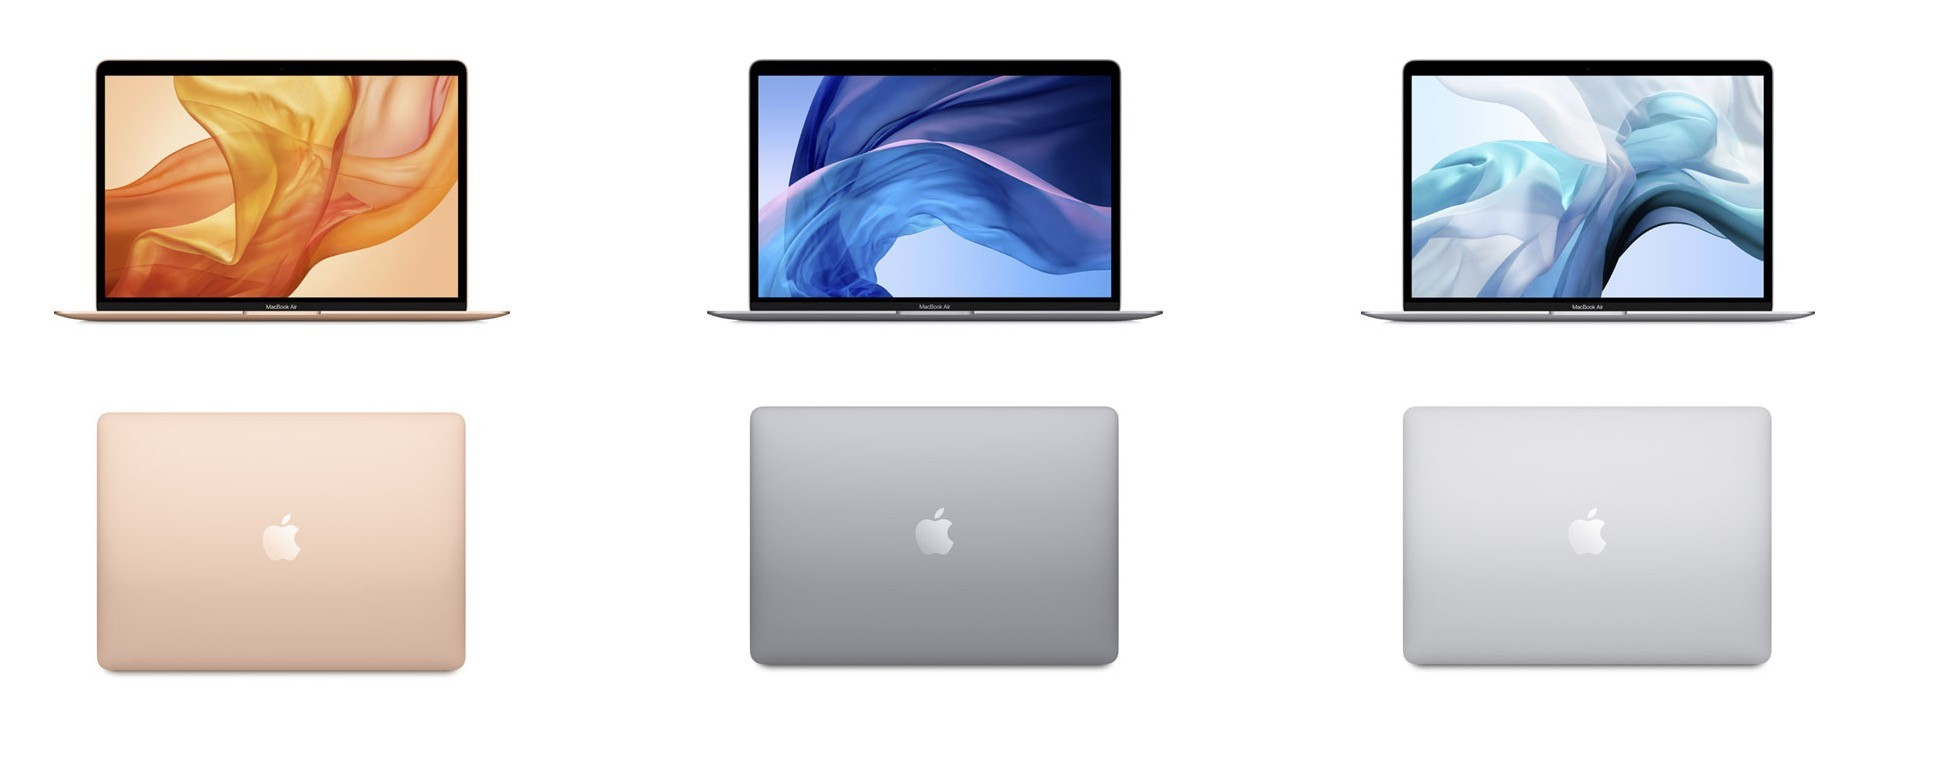 MacBook Air Leasing Farbtöne